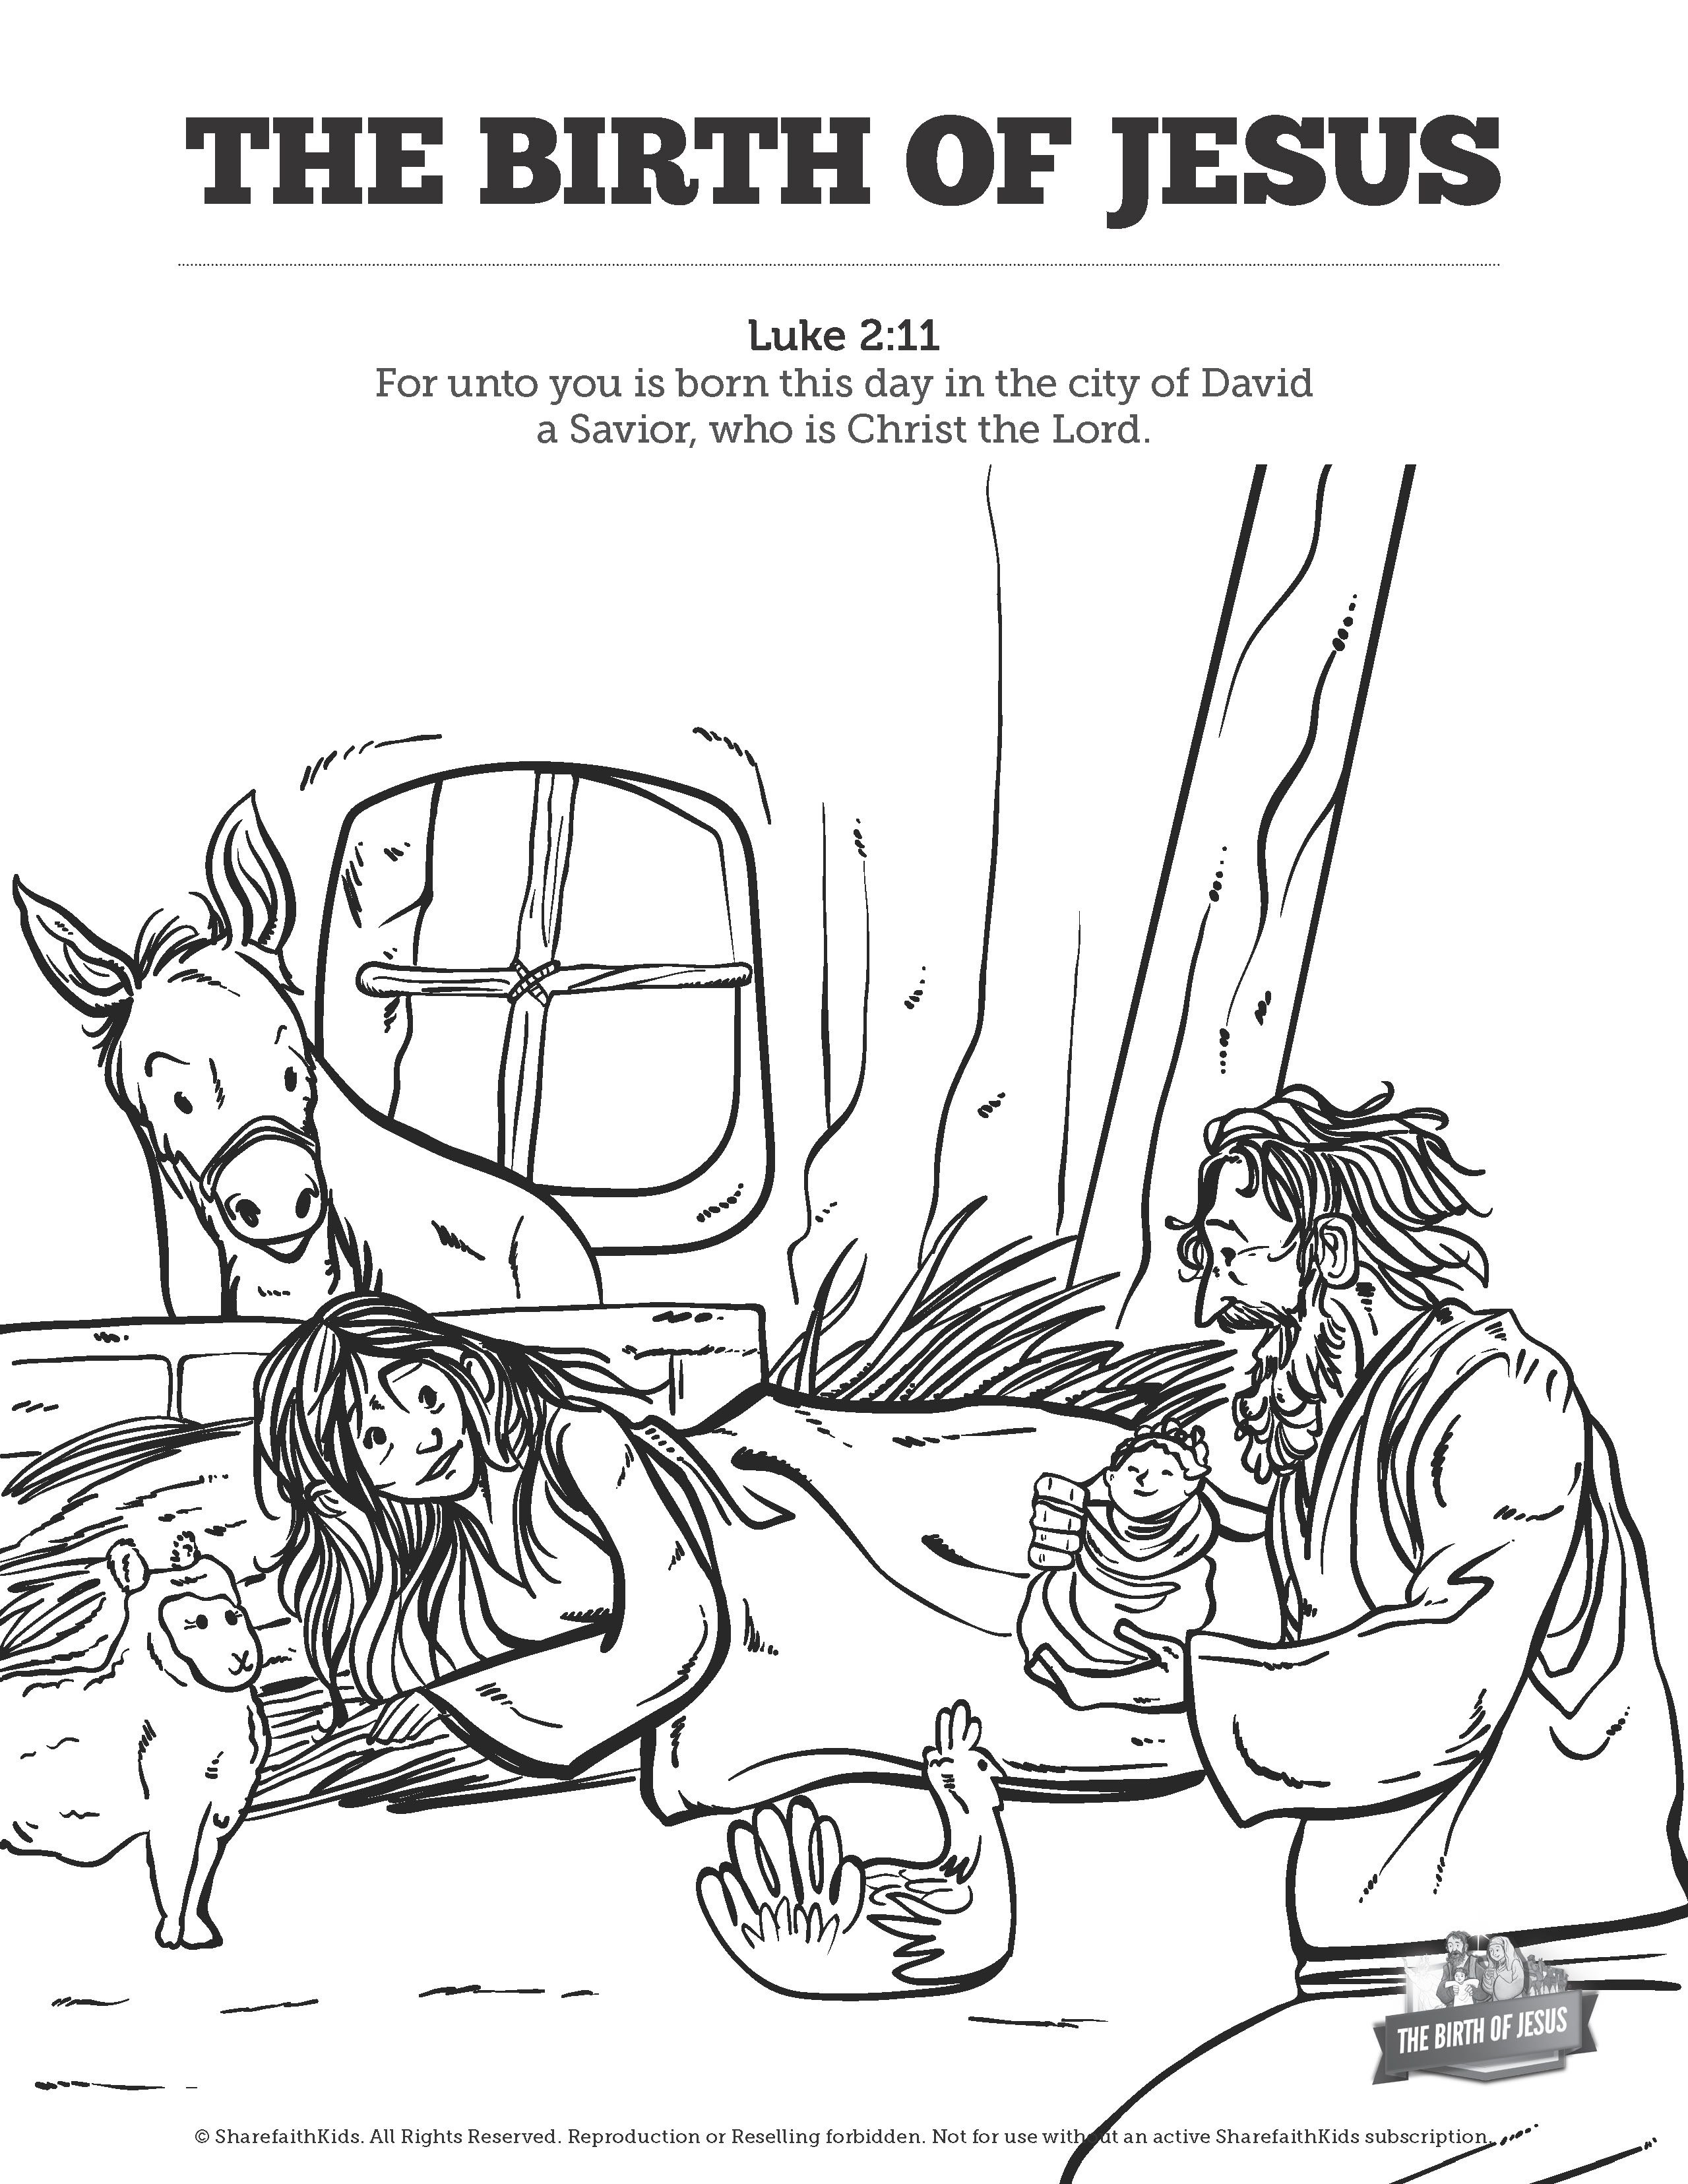 The birth of jesus sunday school coloring pages your kids are going to love unleashing their creativity on this birth of jesus activity